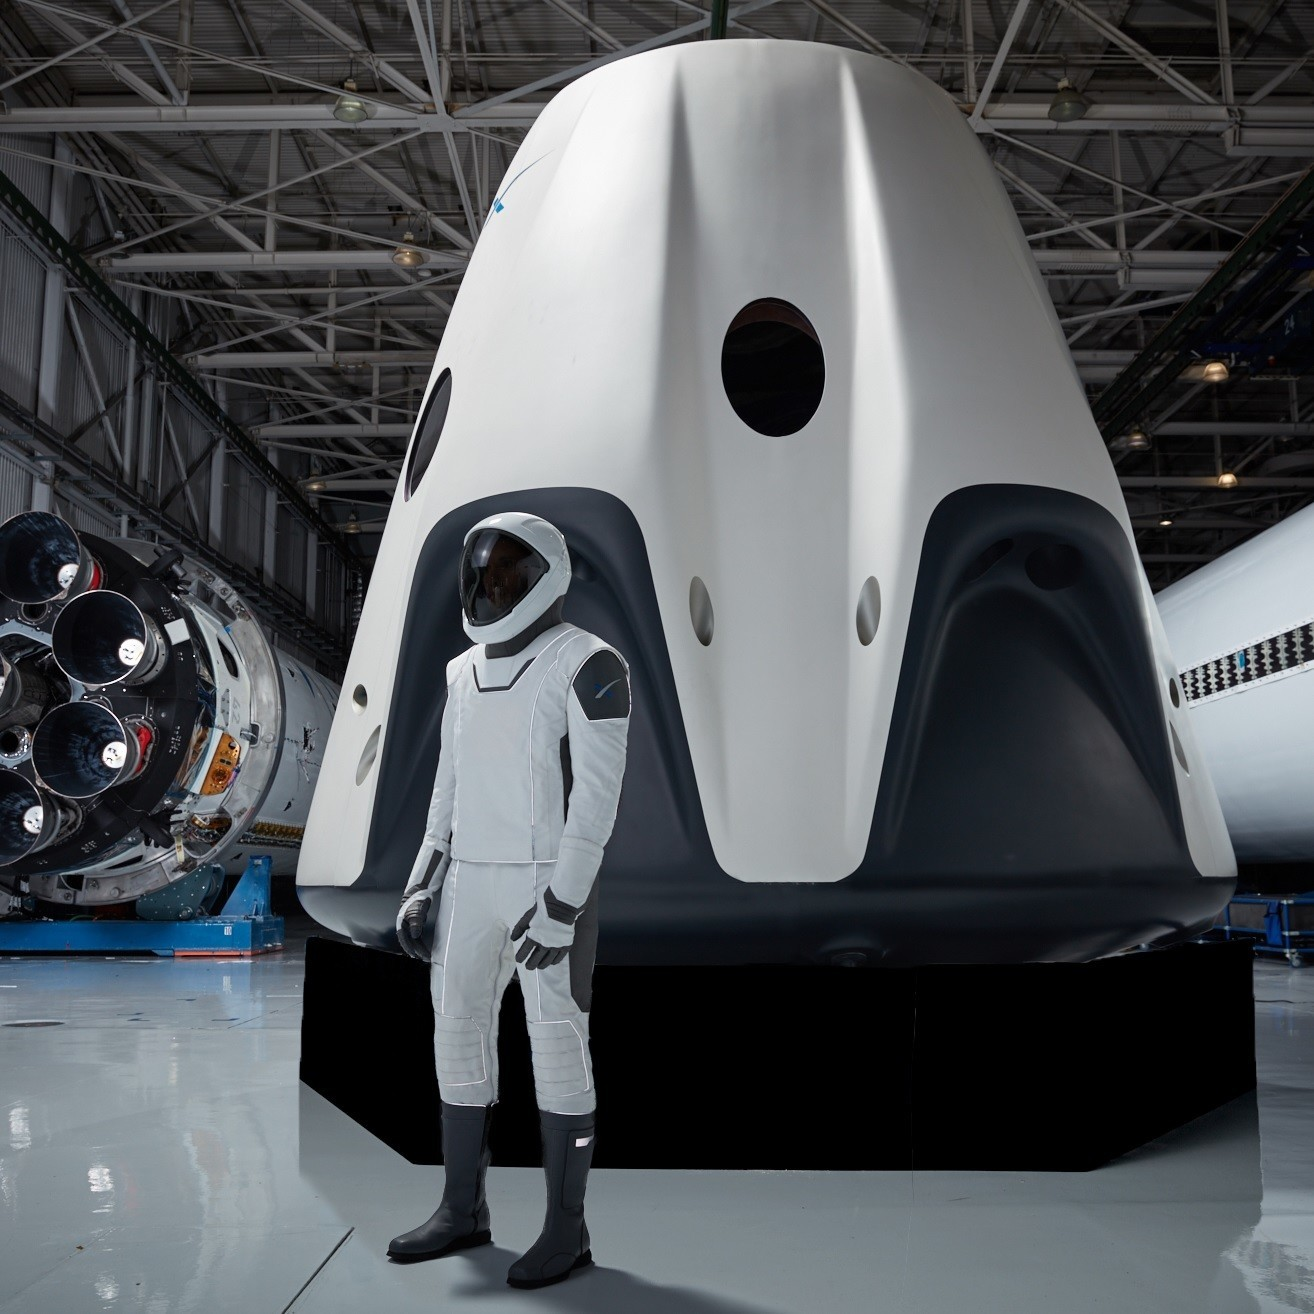 A person wears the SpaceX astronaut spacesuit and stands near the Dragon 2 capsule.